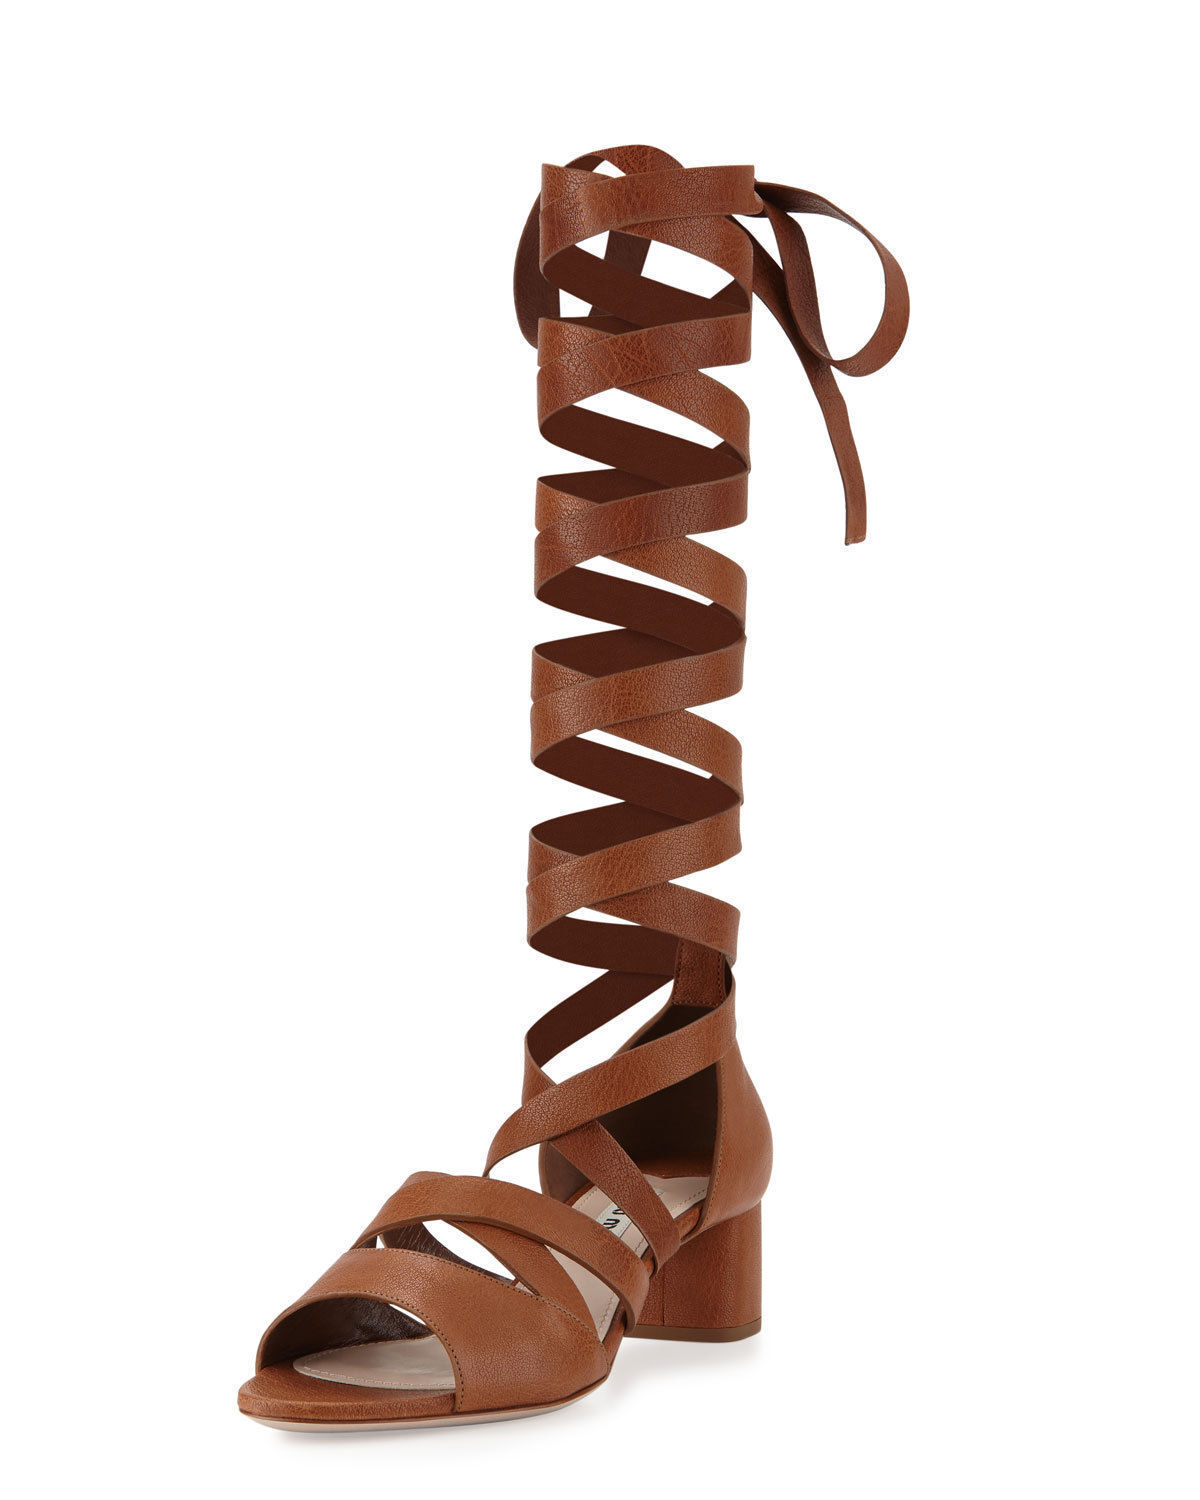 695 Miu Miu Lace -Up Gladiator  oro Leather Sandals Dimensione 38.5 NIB  forma unica